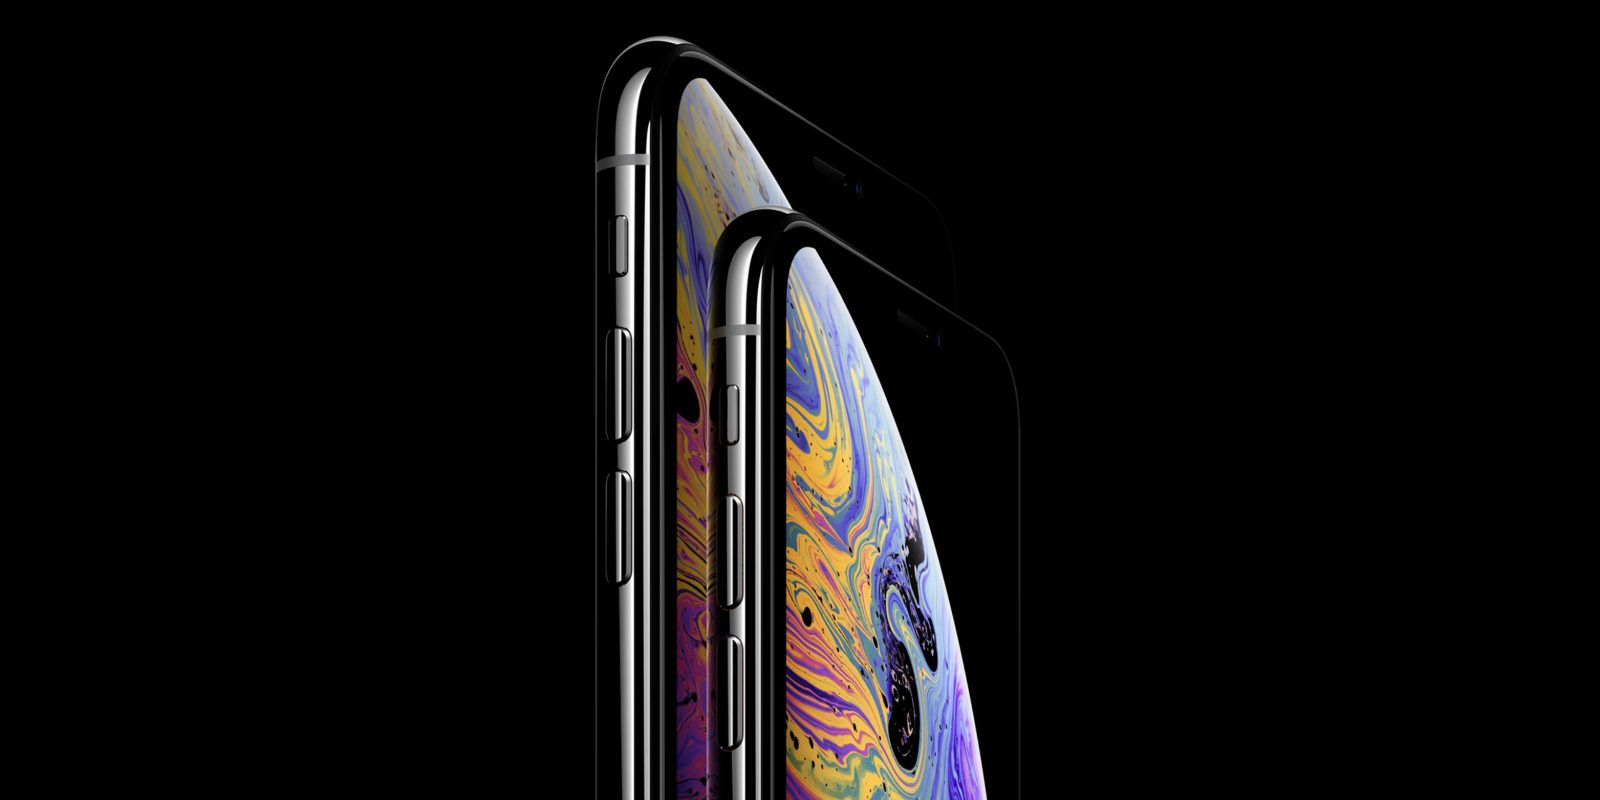 iPhone XS Max is on sale from $700, today only at Woot (Cert. Refurb, Orig. $999)